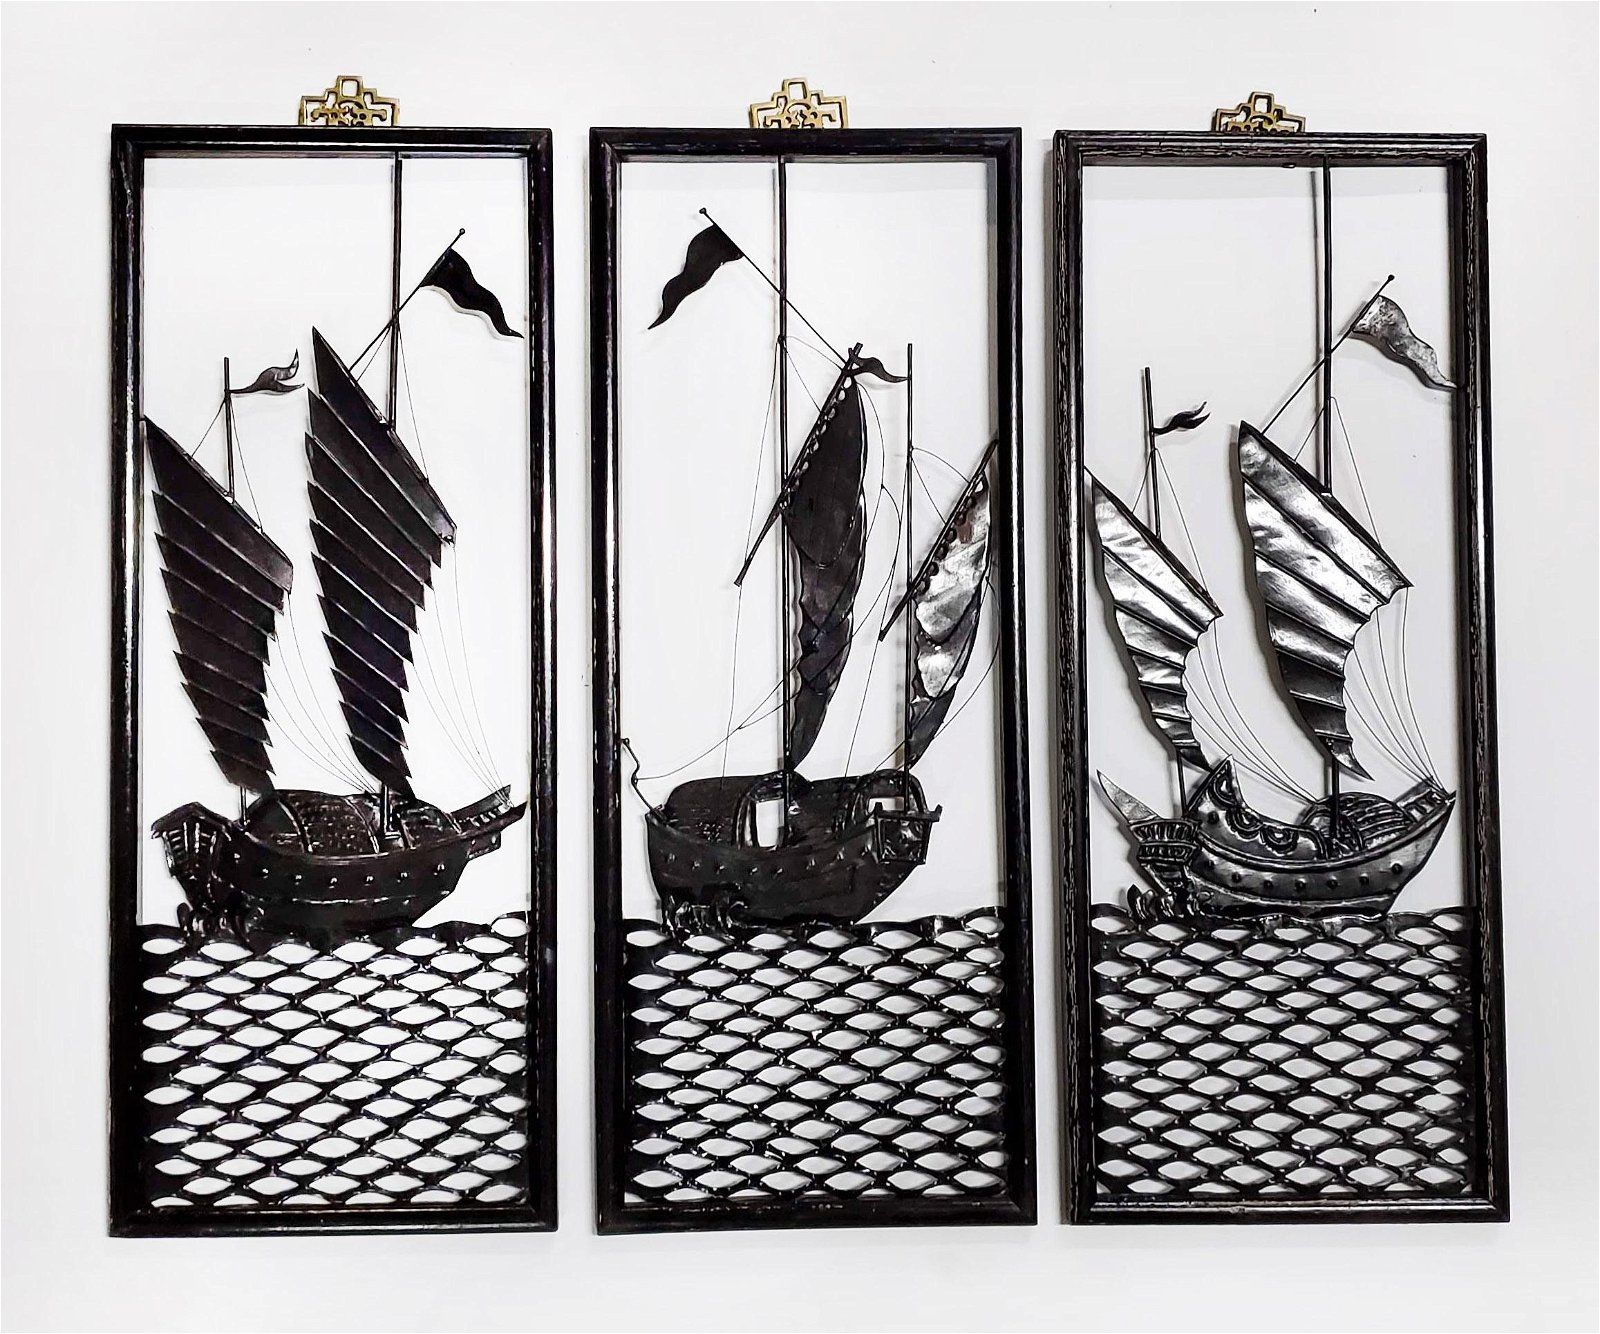 Chinese Metal Cut Out Ship Wall Hangings, ca. 1950s